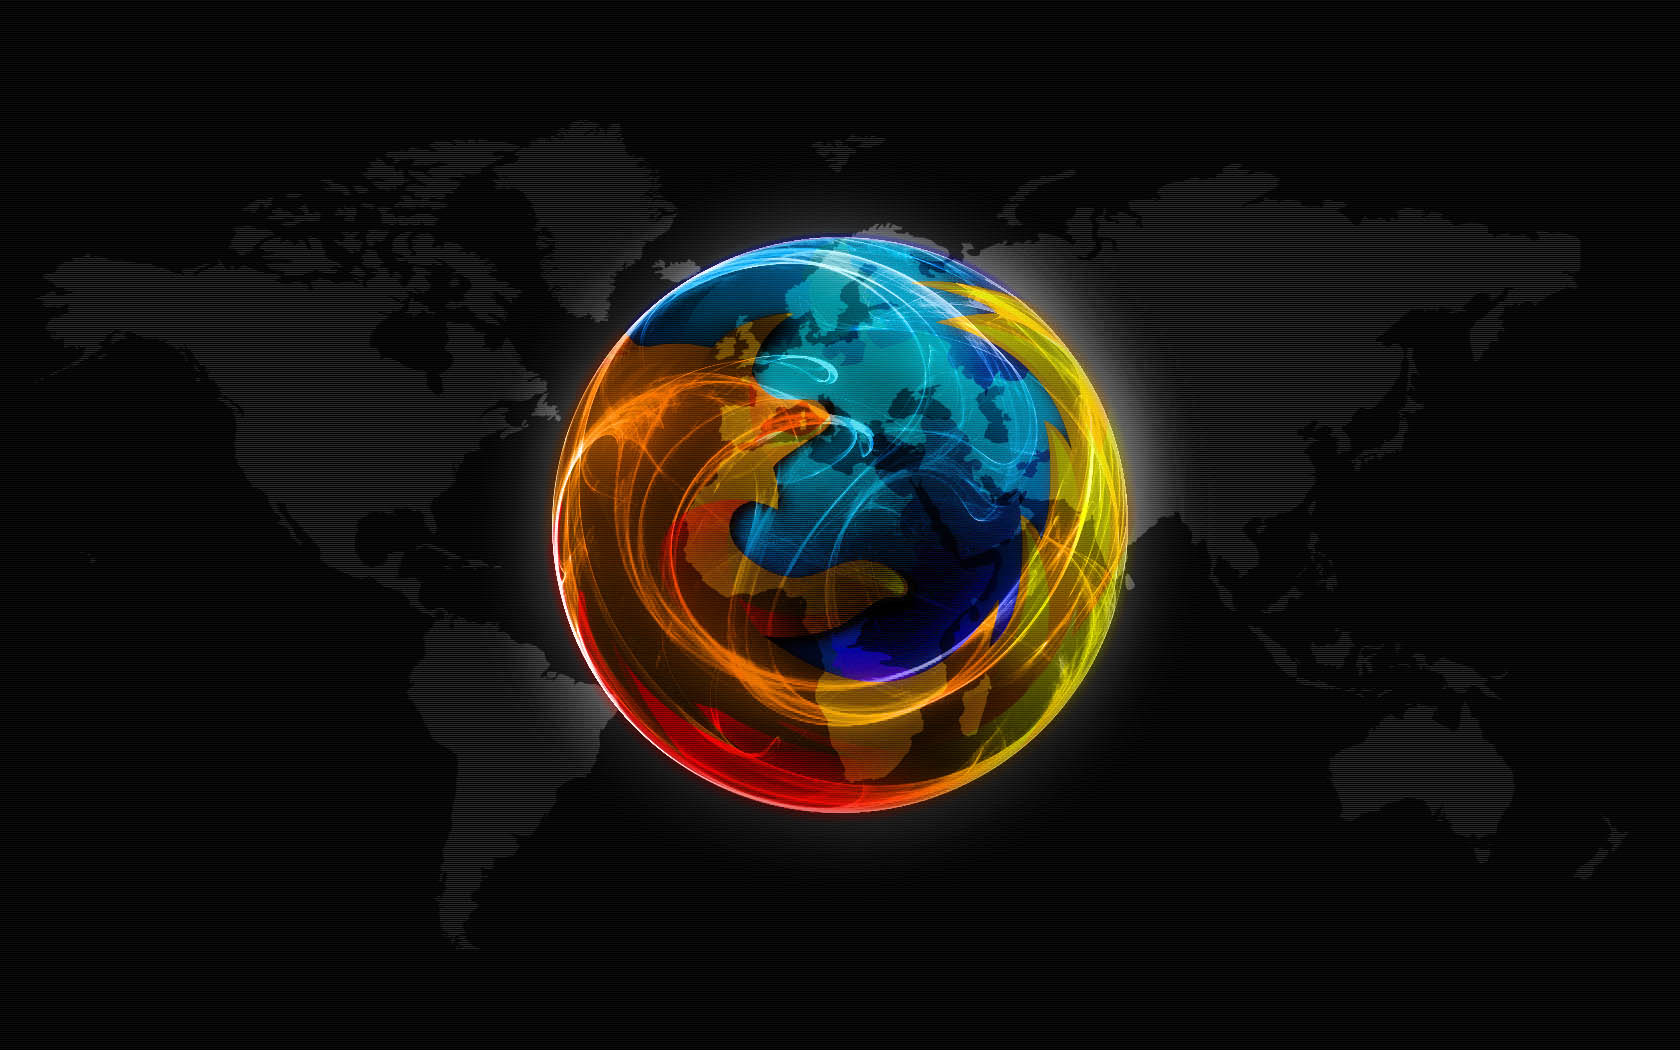 Firefox Backgrounds wallpaper Firefox Backgrounds hd wallpaper 1680x1050